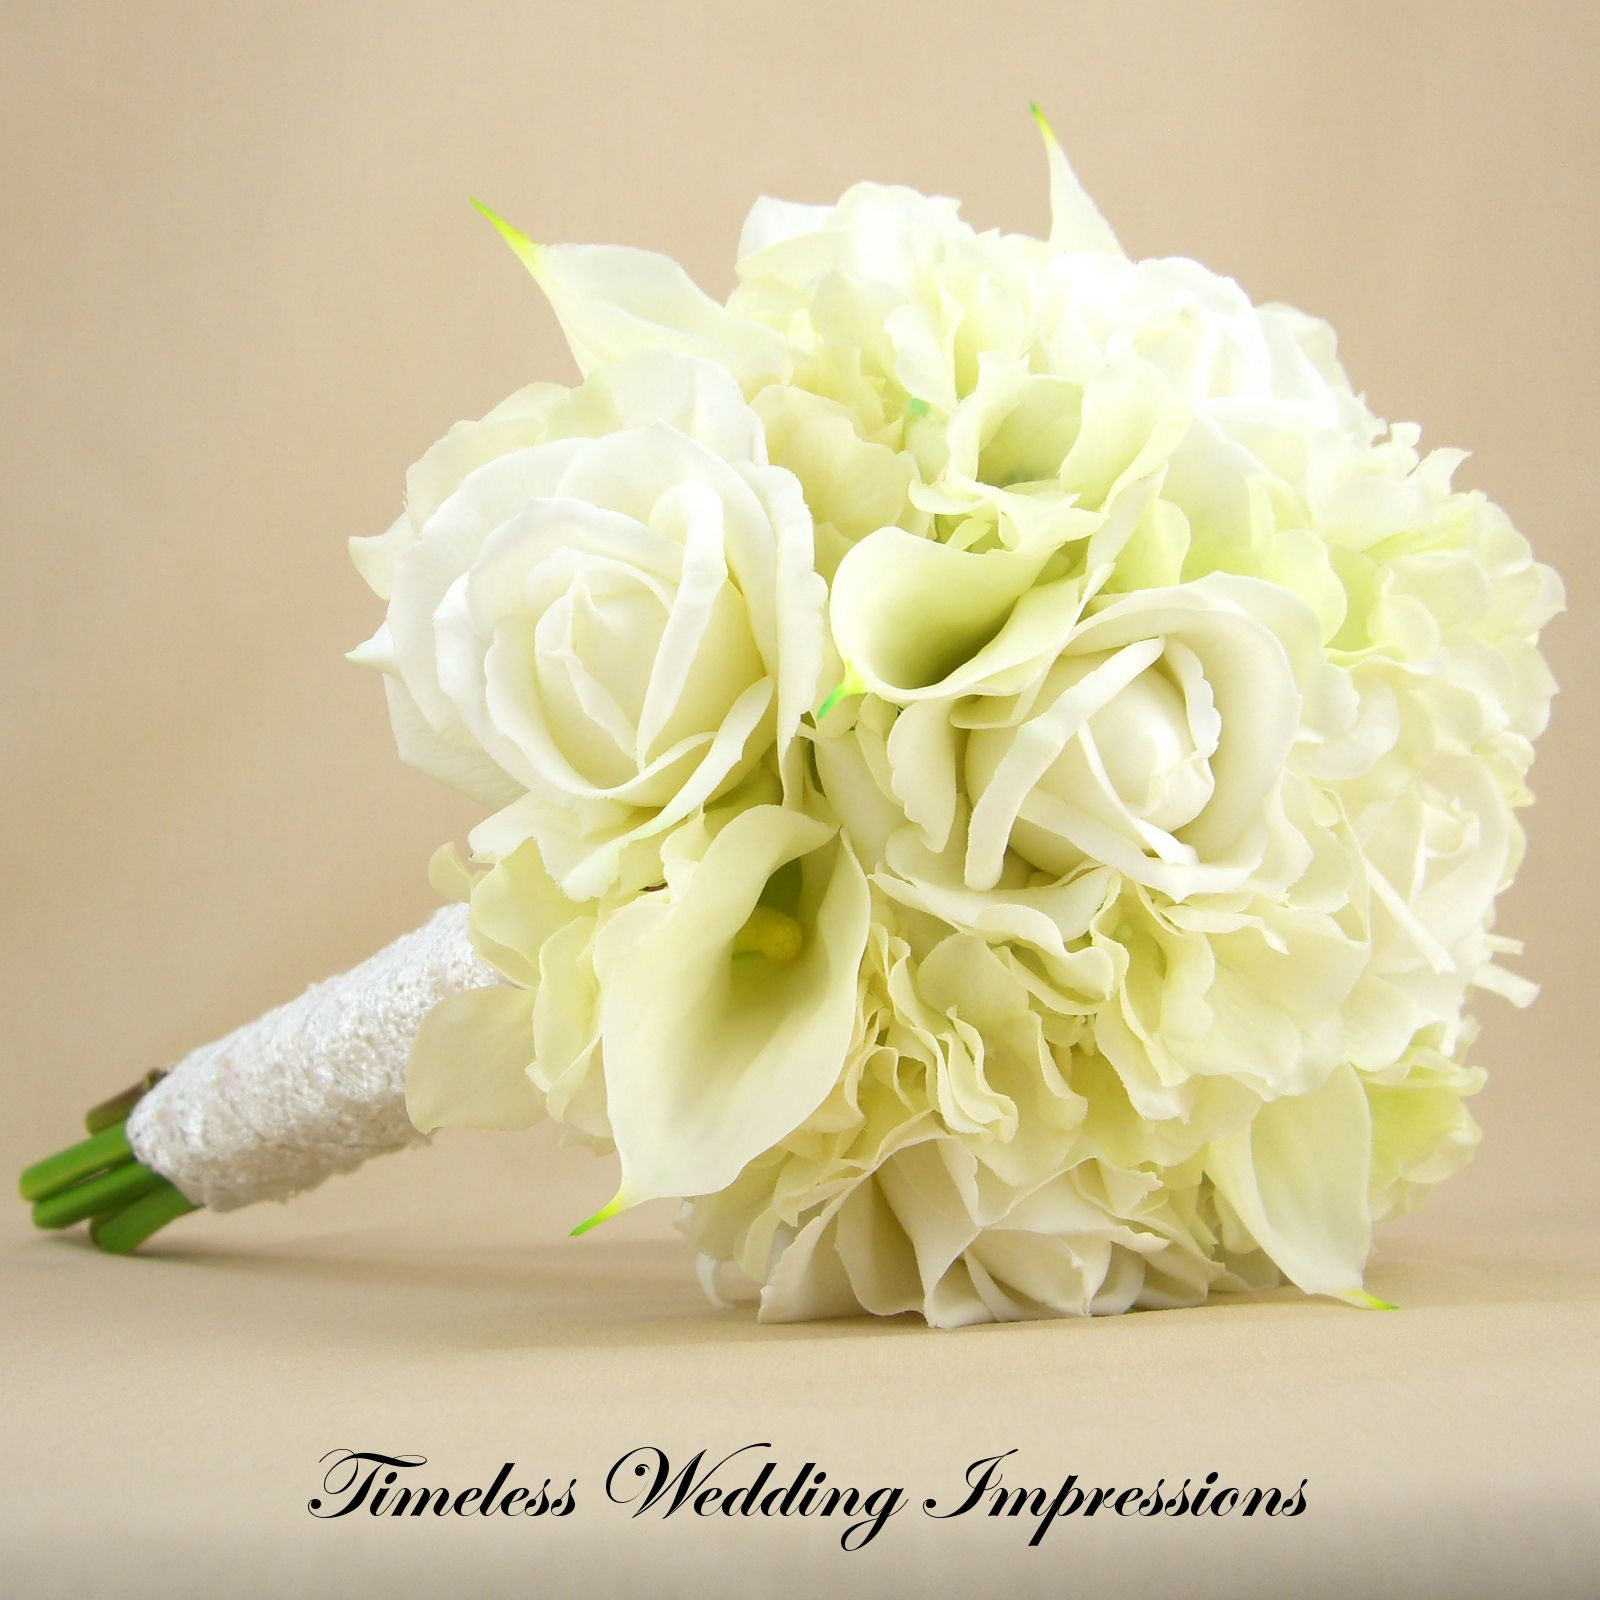 Bridal Bouquet With Calla Lilies And Hydrangeas : White calla lily and red rose bouquet wedding hydrangeas